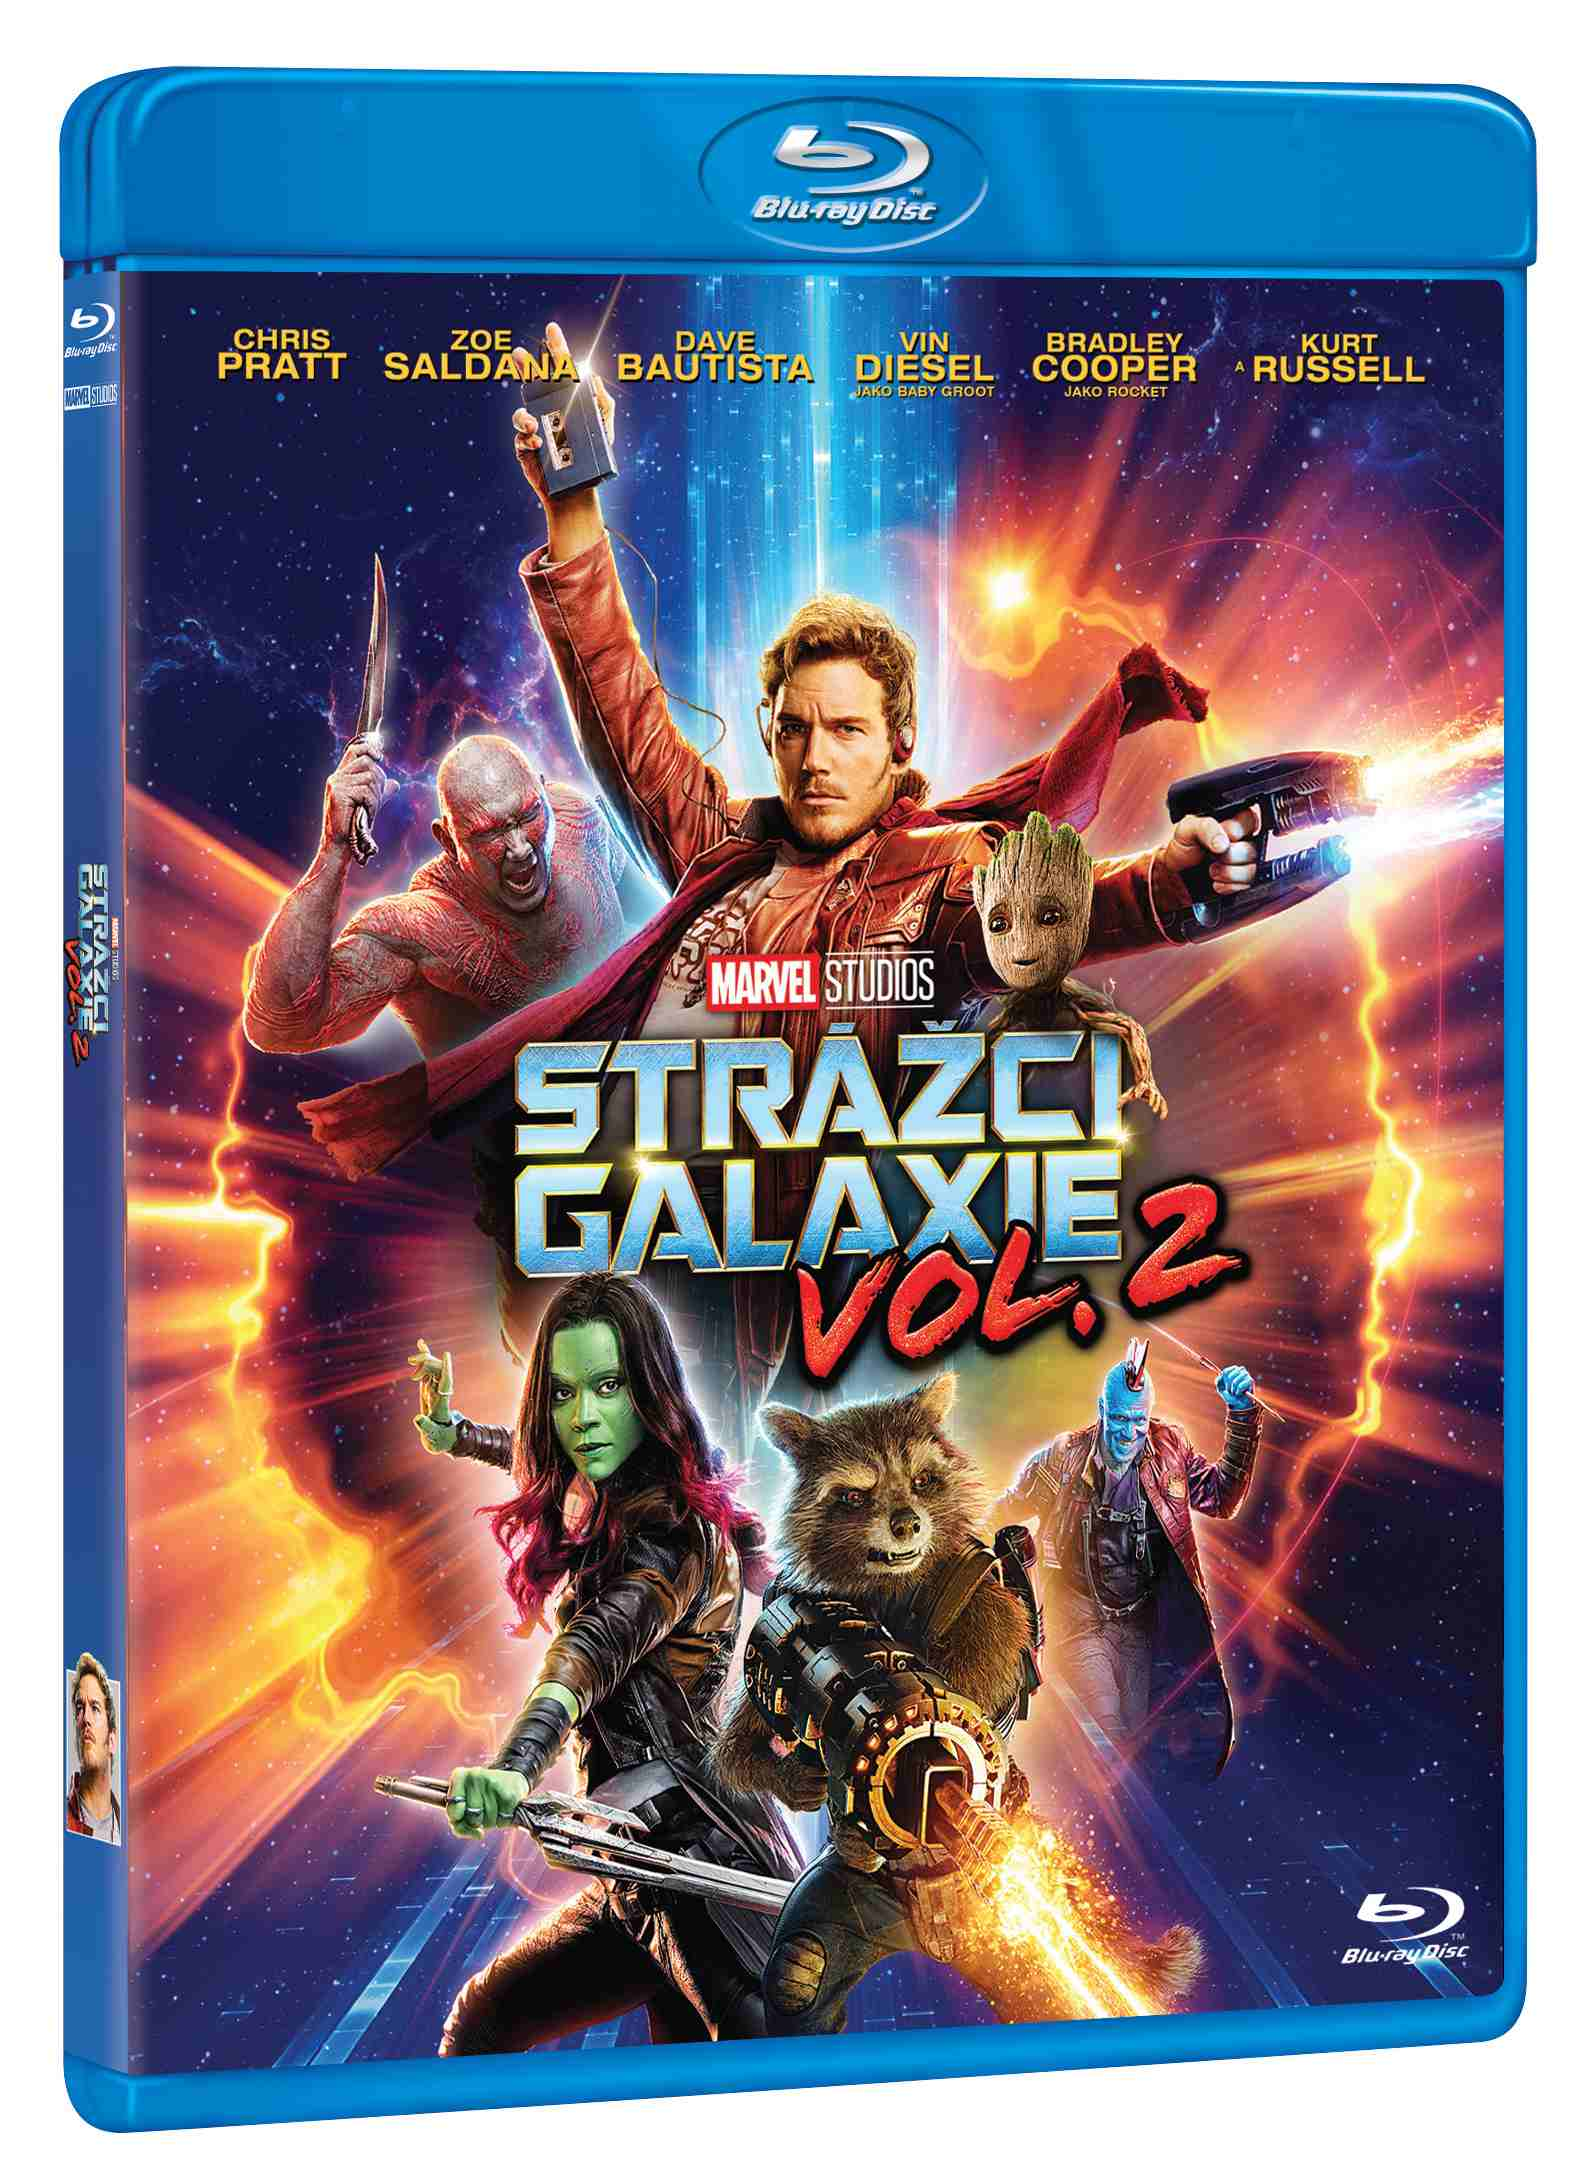 STRÁŽCI GALAXIE VOL. 2 - Blu-ray